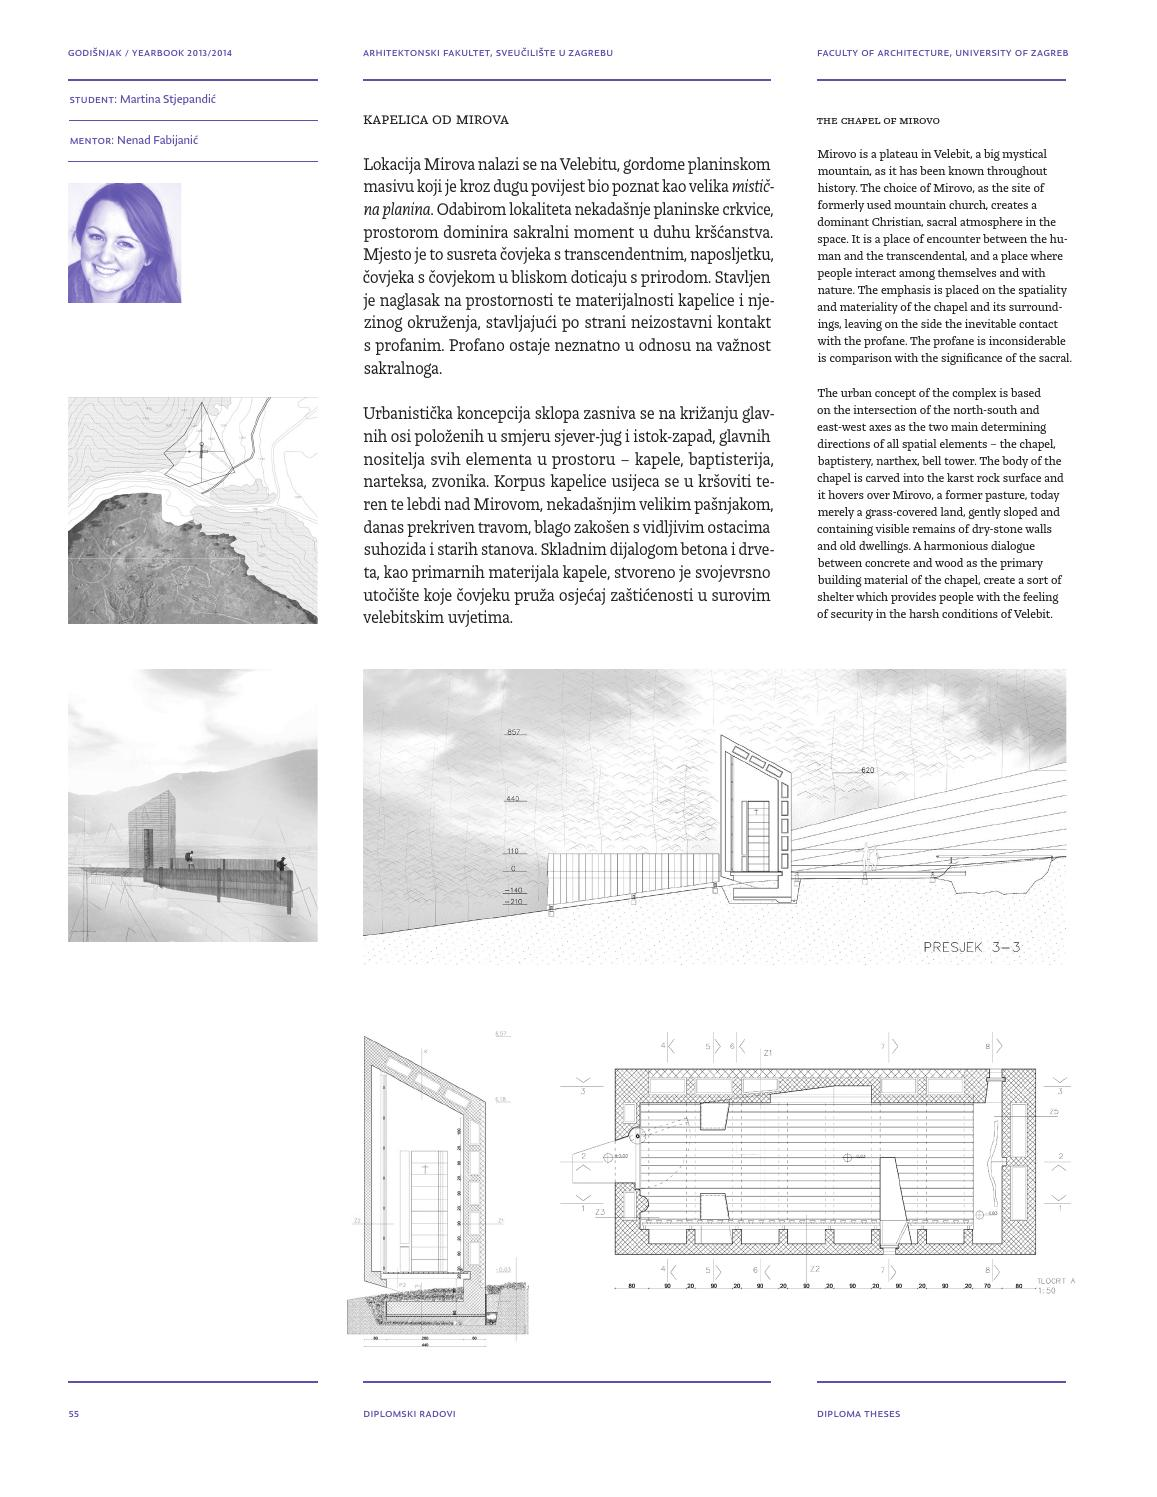 Faculty Of Architecture Zagreb Yearbook 2013 14 By Faculty Of